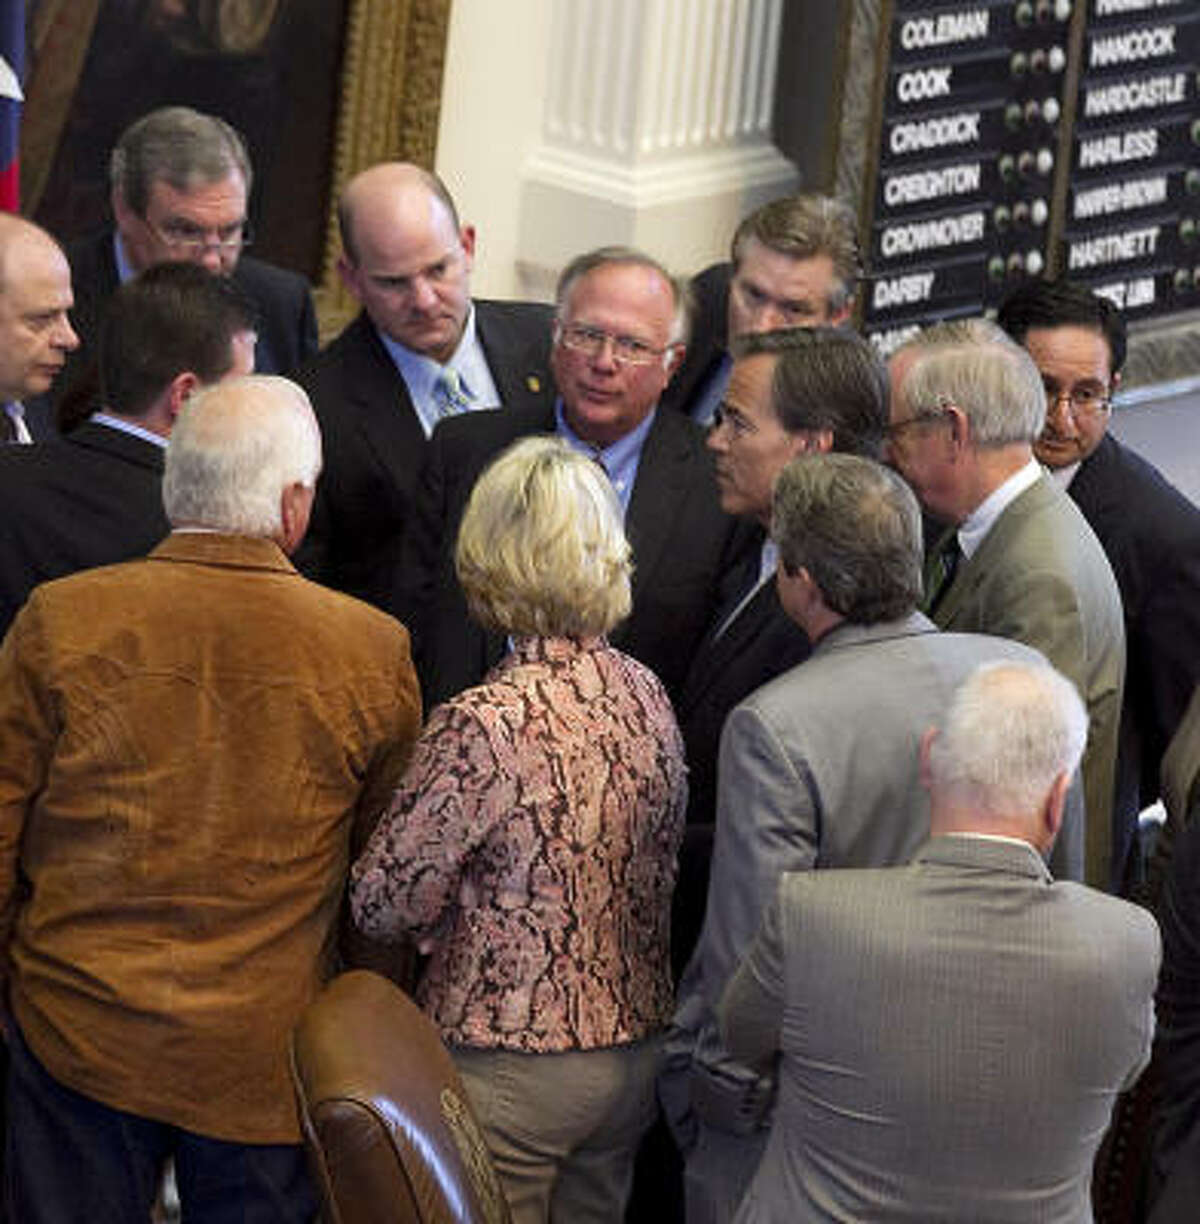 Legislators gather around House Speaker Joe Straus on Saturday. Straus deflected critics, saying he thought